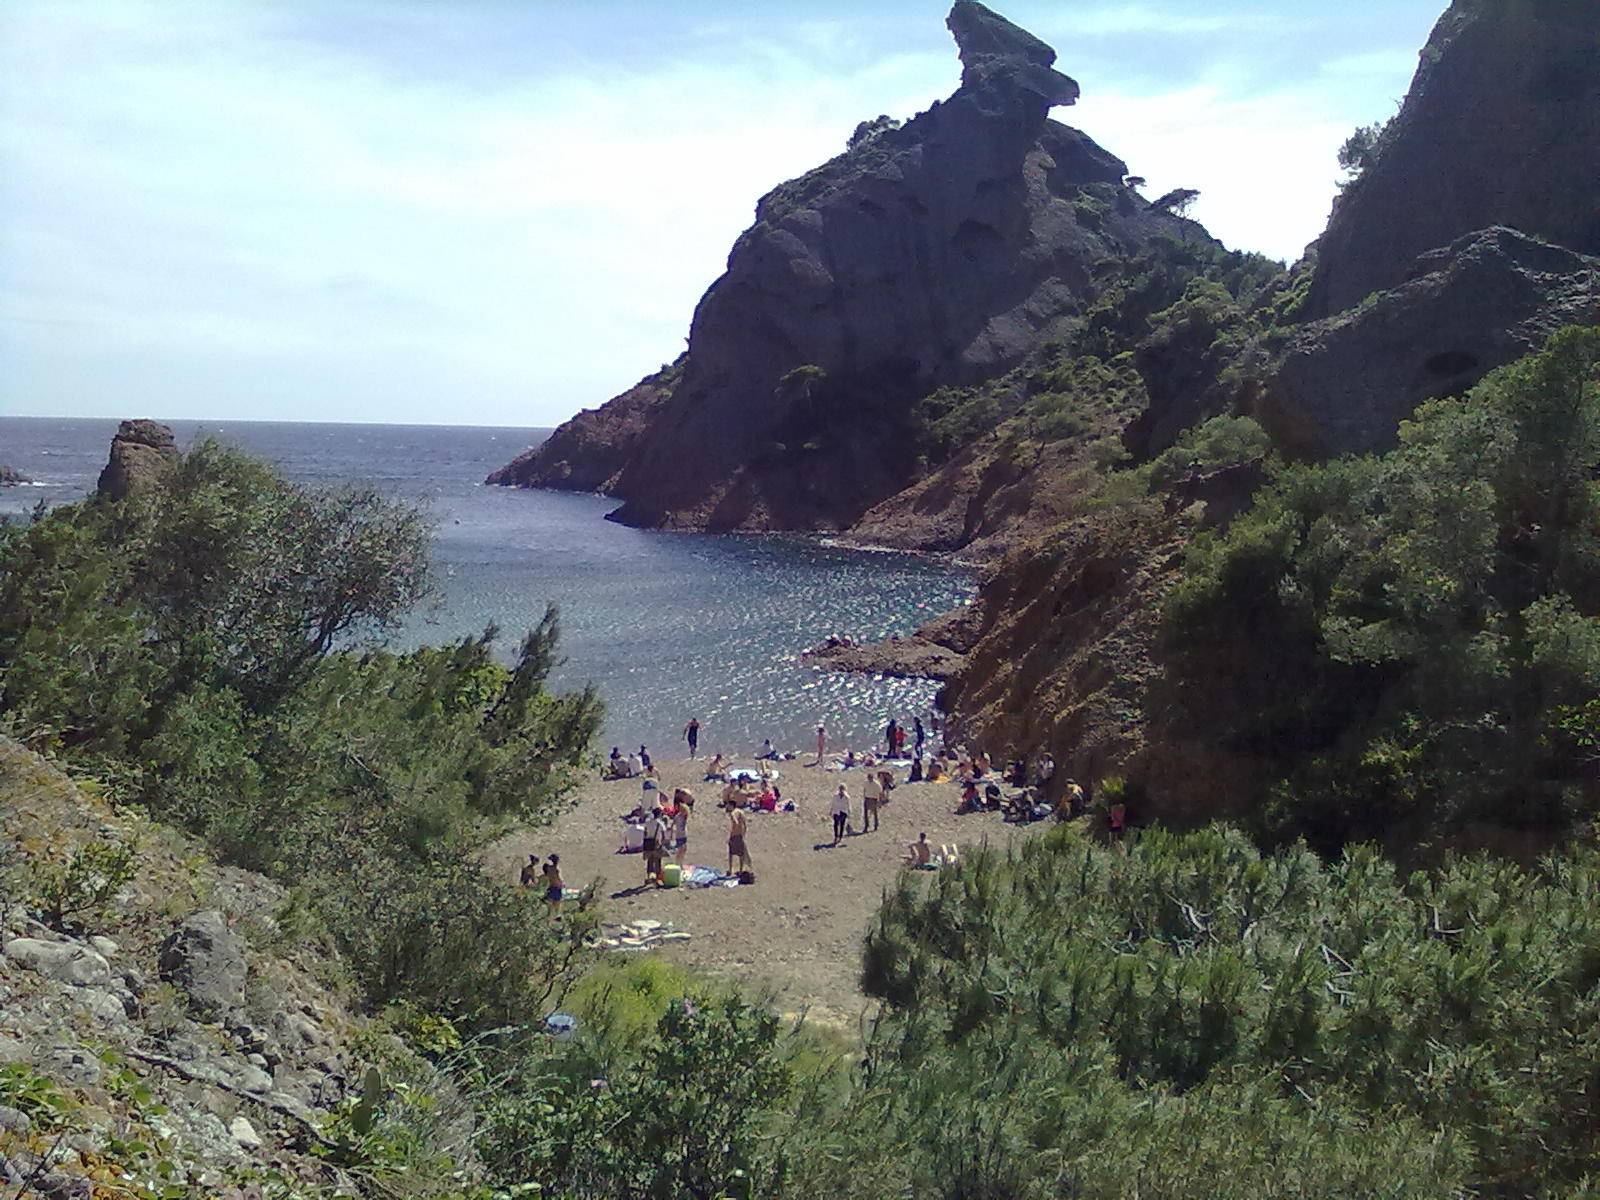 Photo 1: La calanque de figuerolles